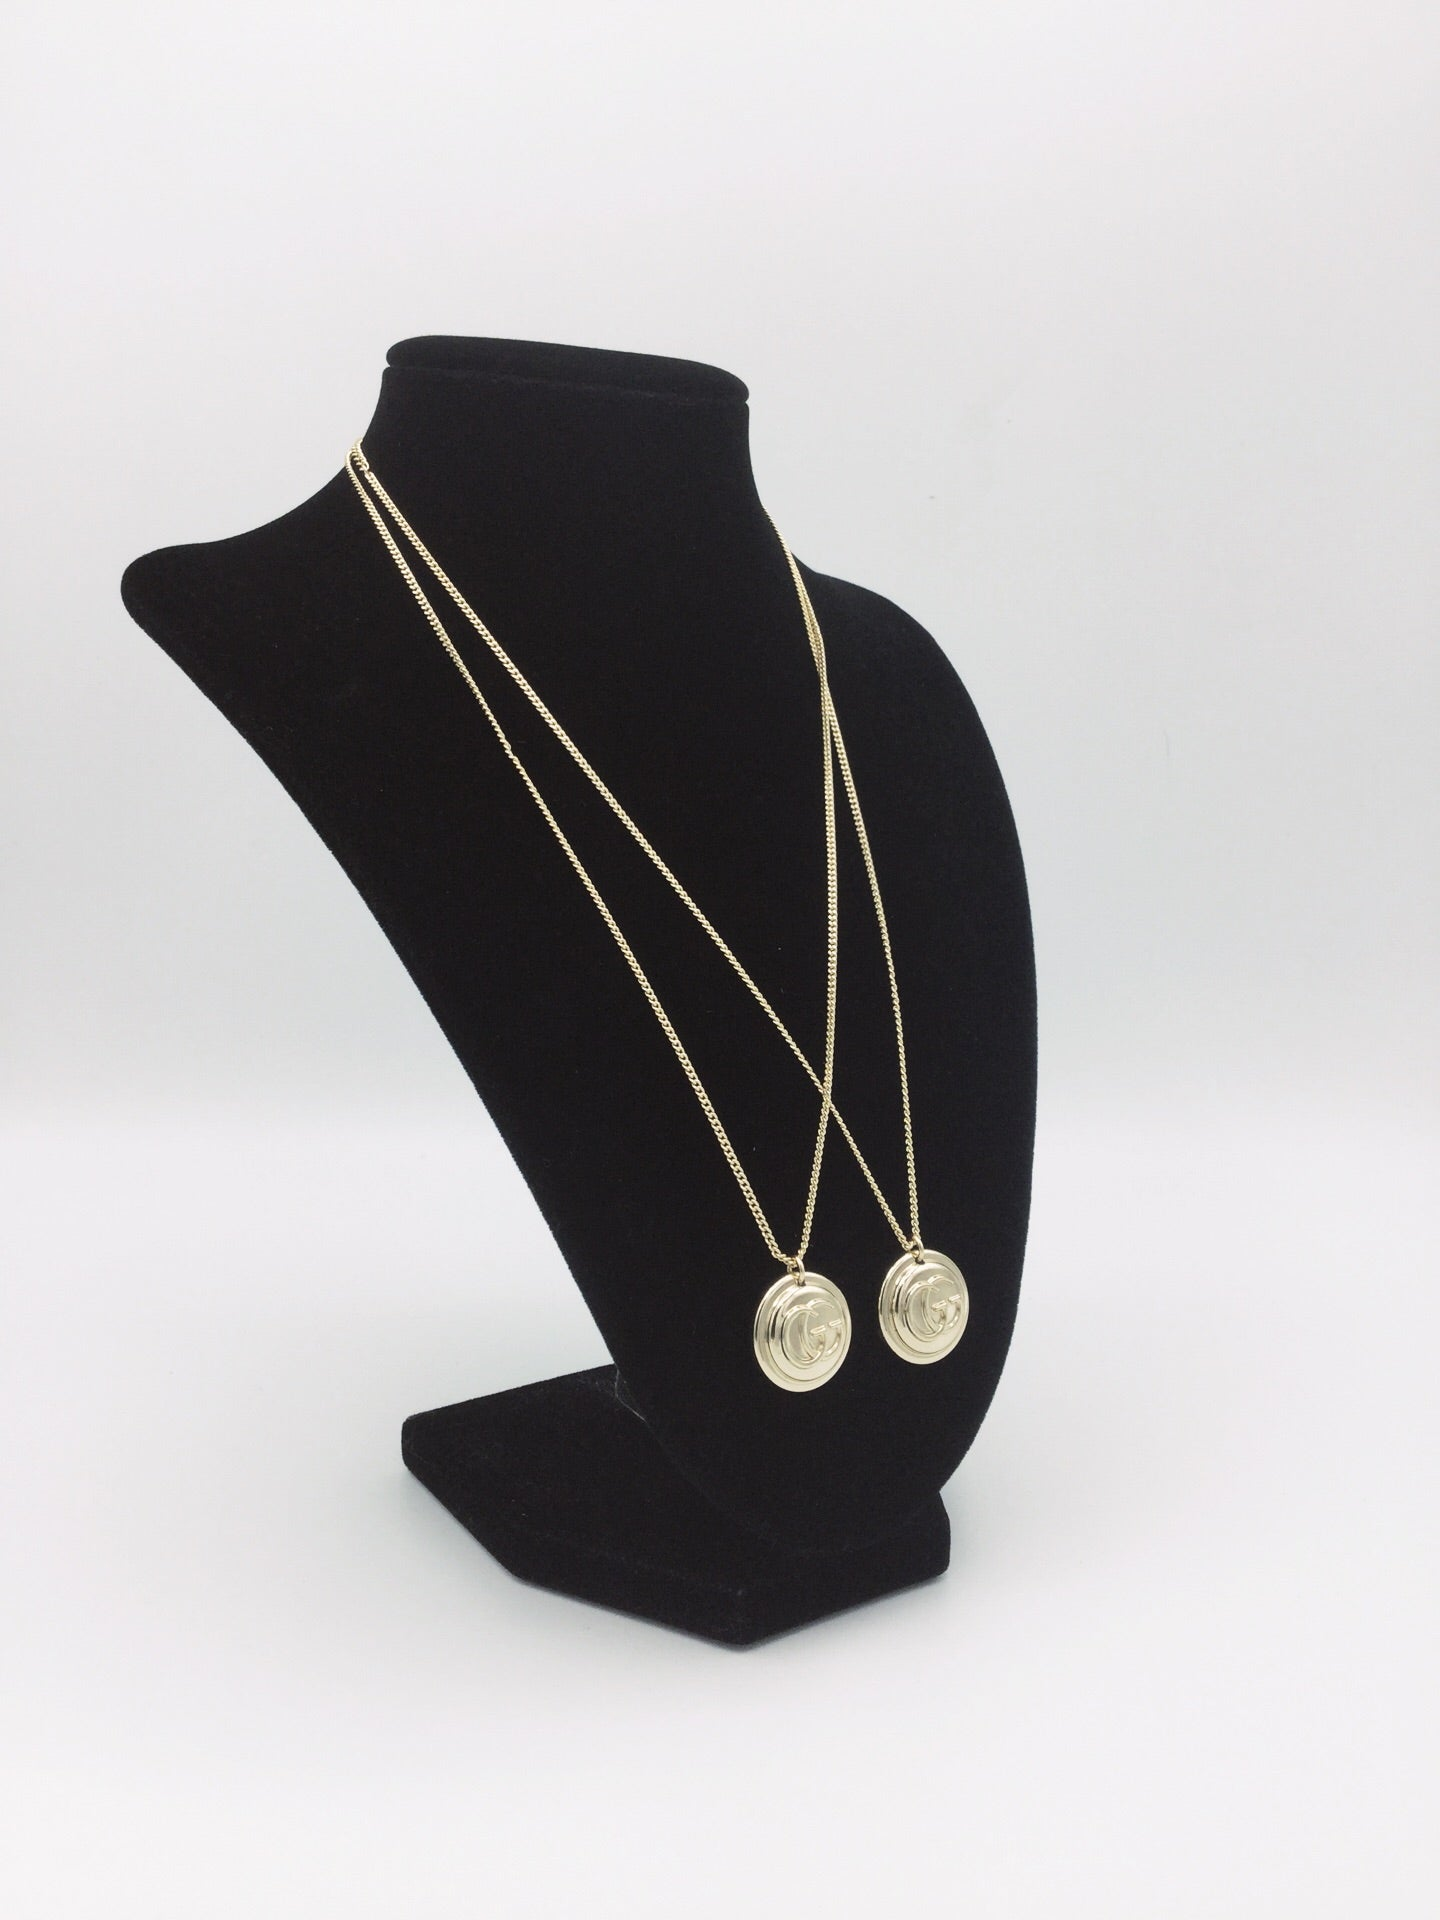 Gold Filled Button Necklace with logo